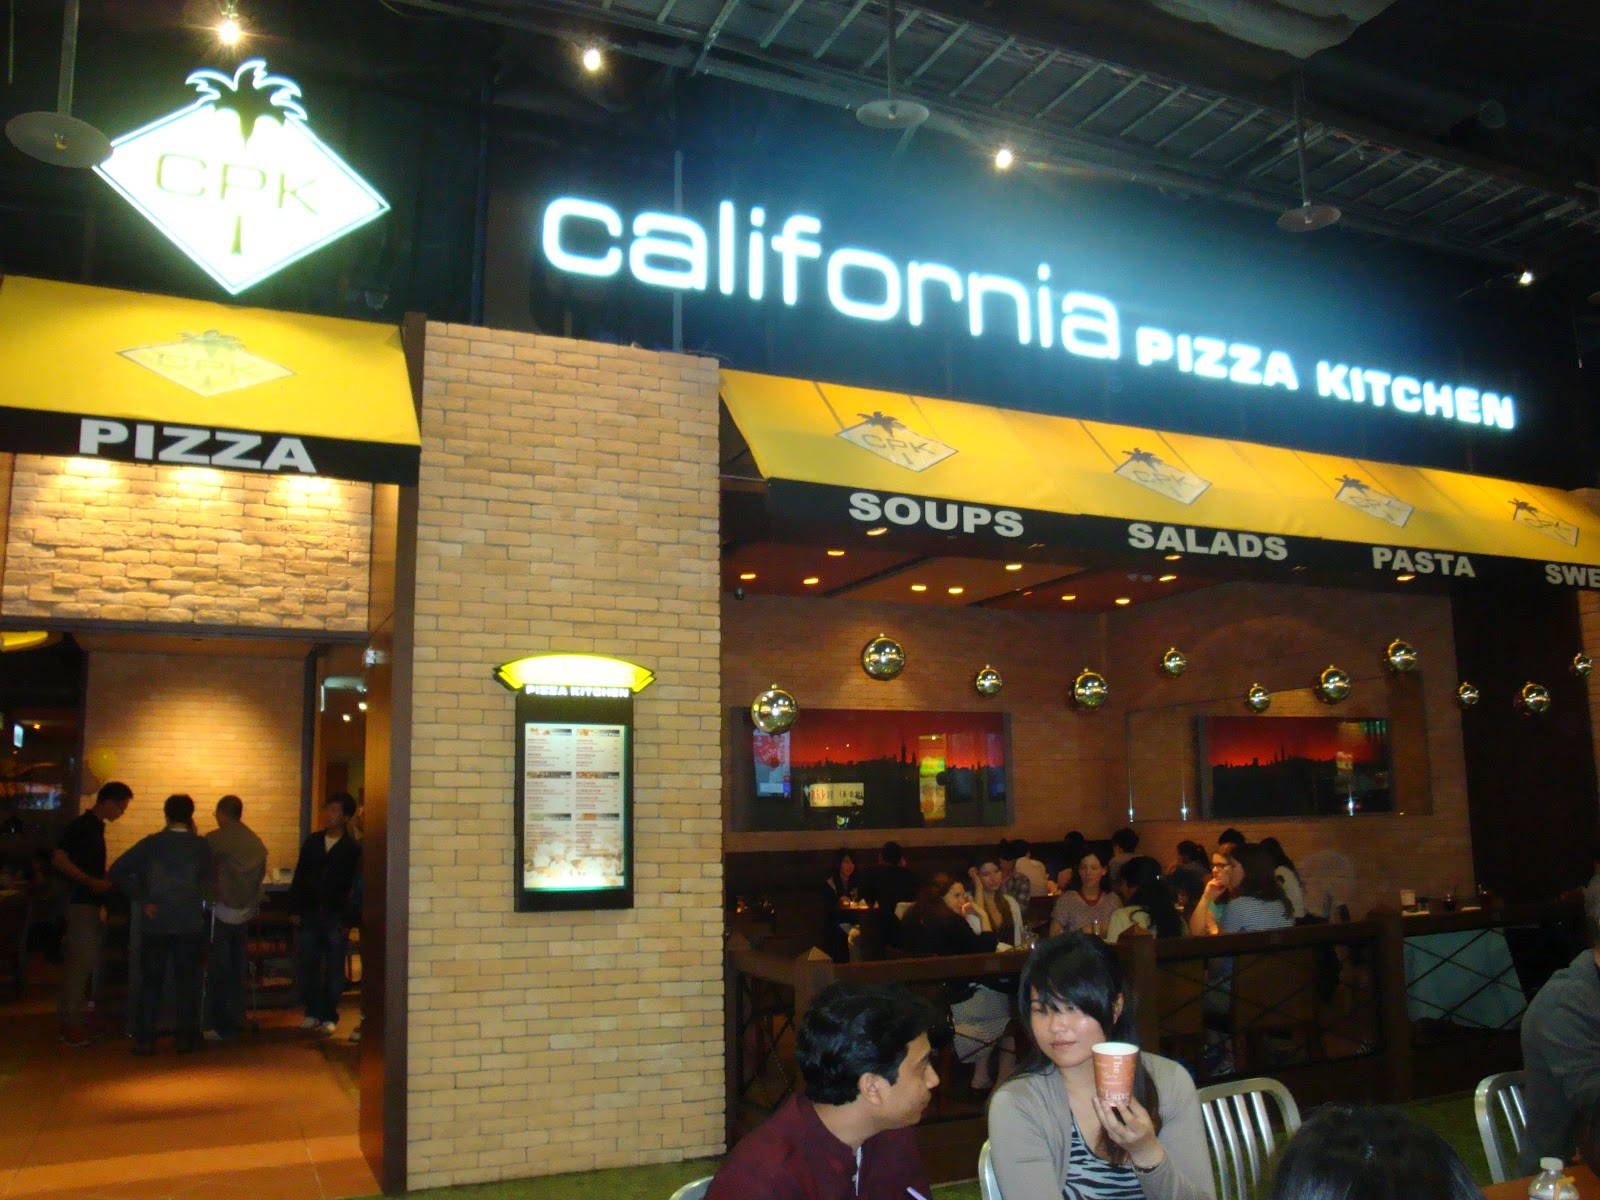 ForMouthsA An Exploration of The Taiwan Food Scene California Pizza Kitchen